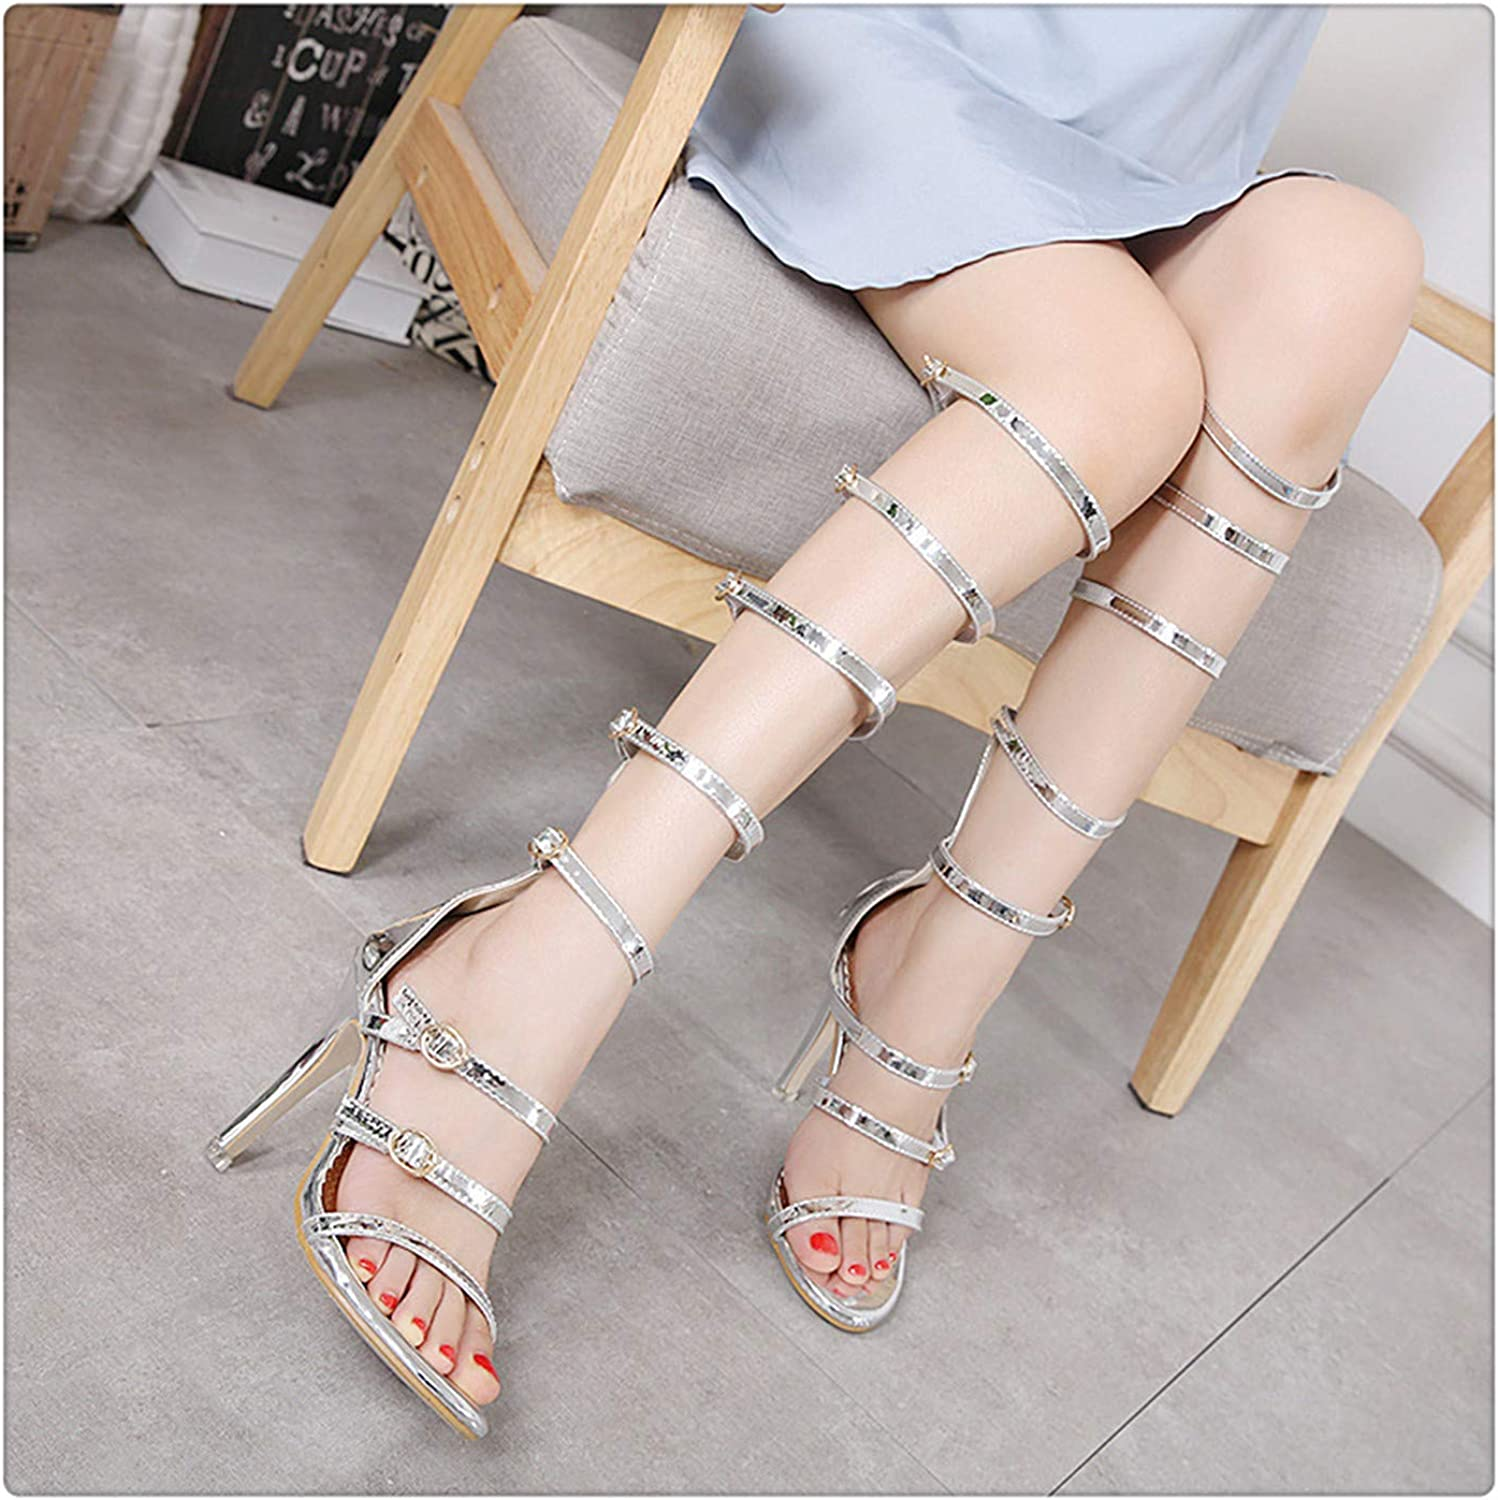 AAKOPE& Fashion Leisure Thin Heels Sandals Women Summer Casual Buckle Strap Ladies shoes Ankle Strap Super High Ankle Strap Sandals Silver 37